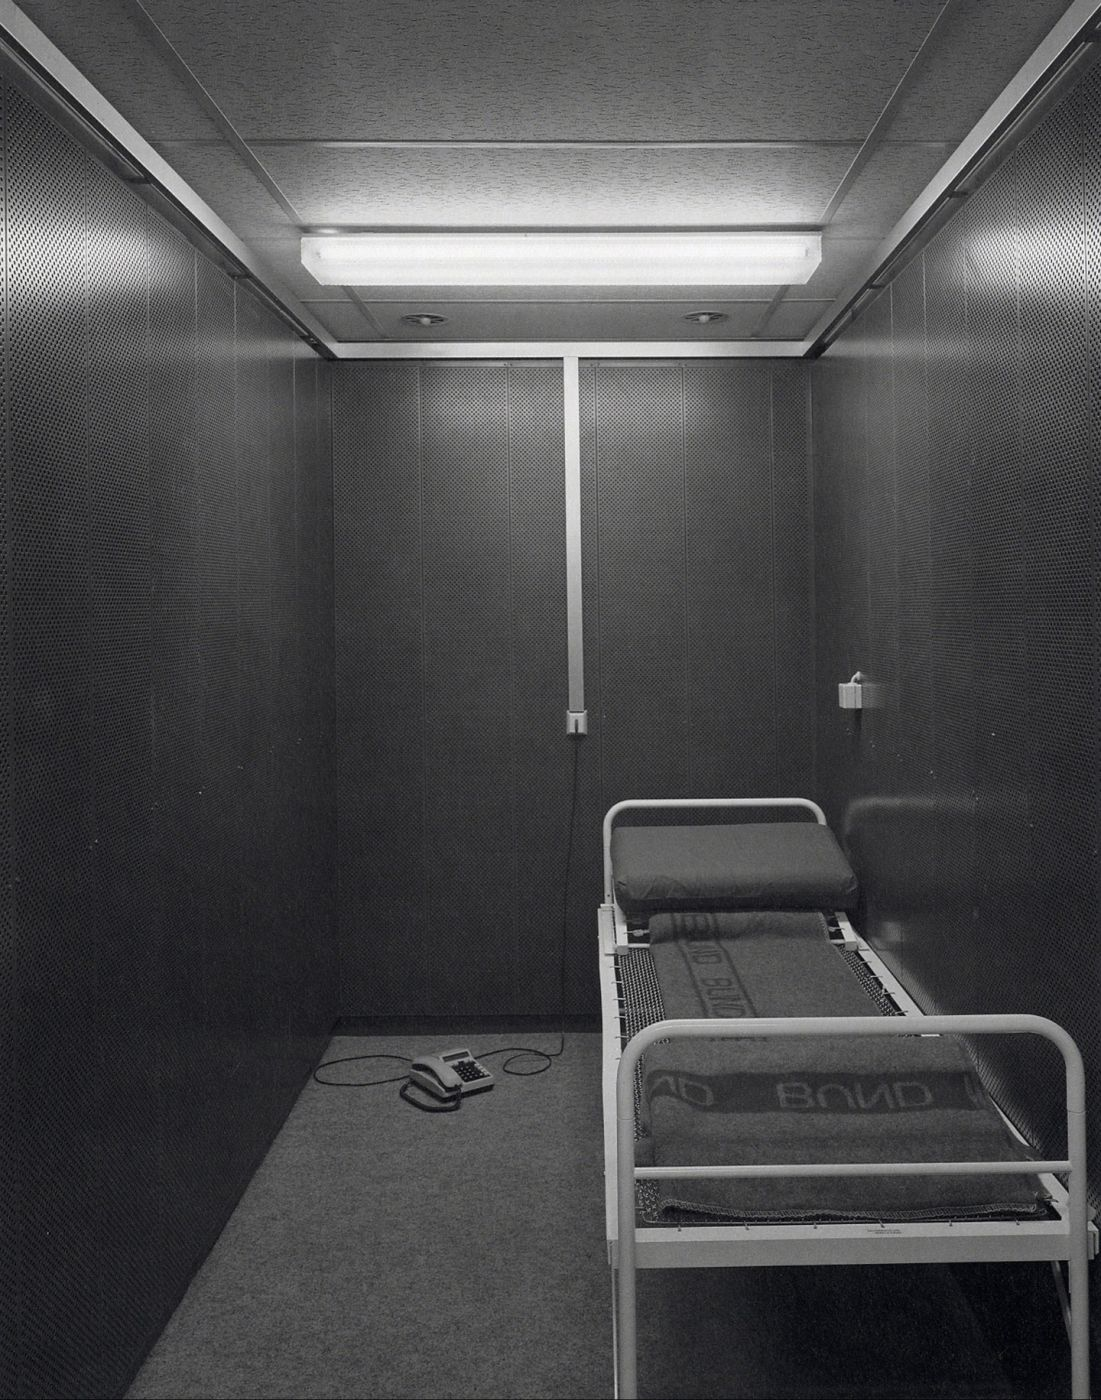 """Andreas Magdanz: Dienststelle Marienthal (Marienthal Office/Bunker Photographs), Limited Edition (""""M'Thal,"""" with Ashtray from facility)"""